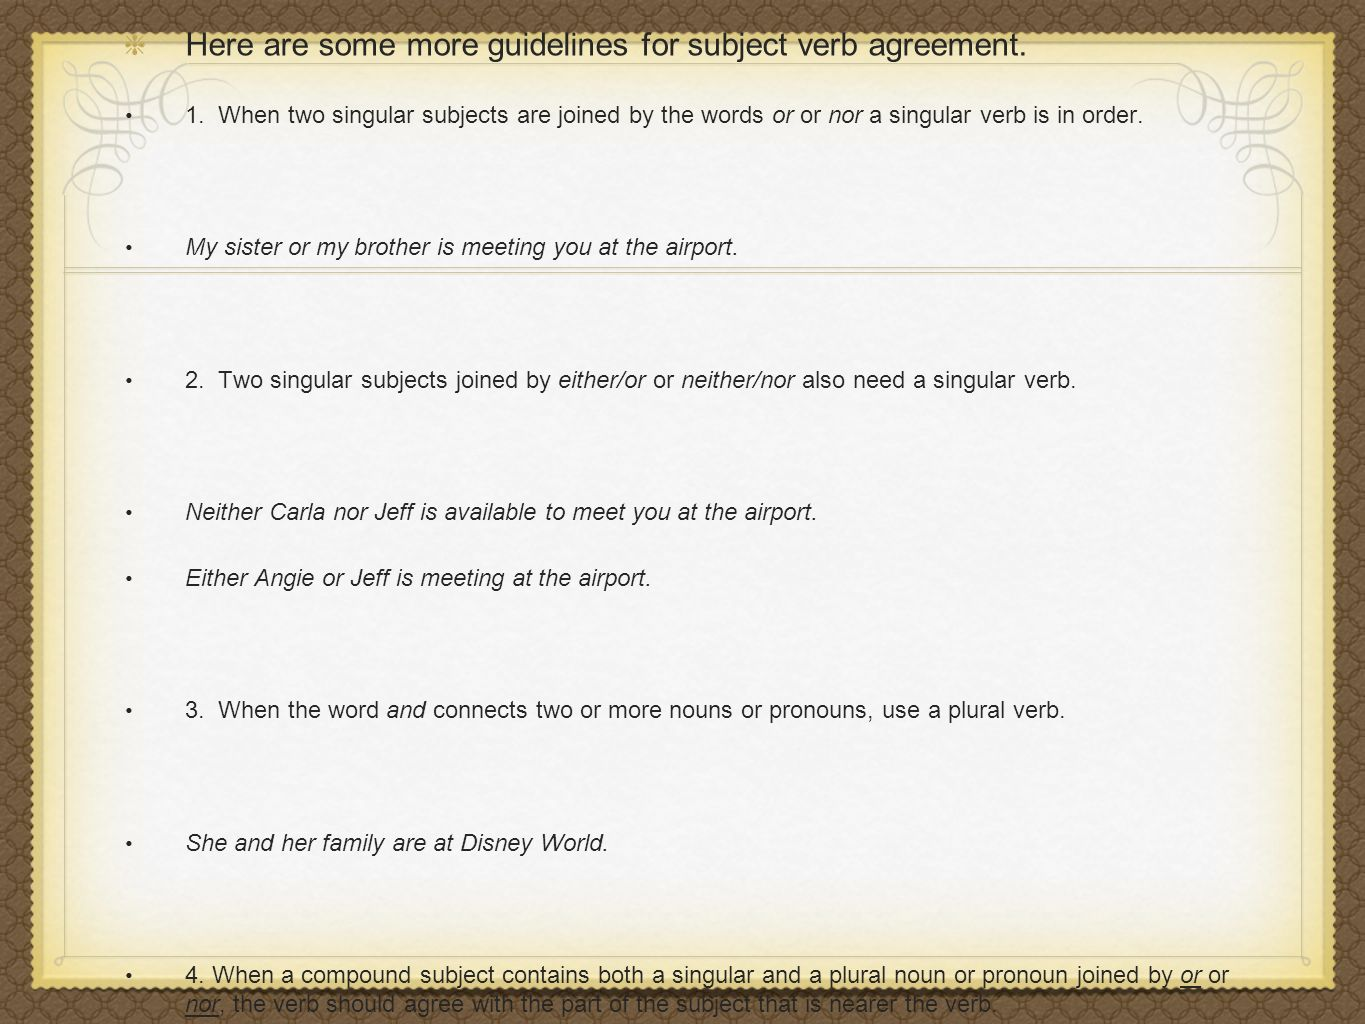 Here are some more guidelines for subject verb agreement.